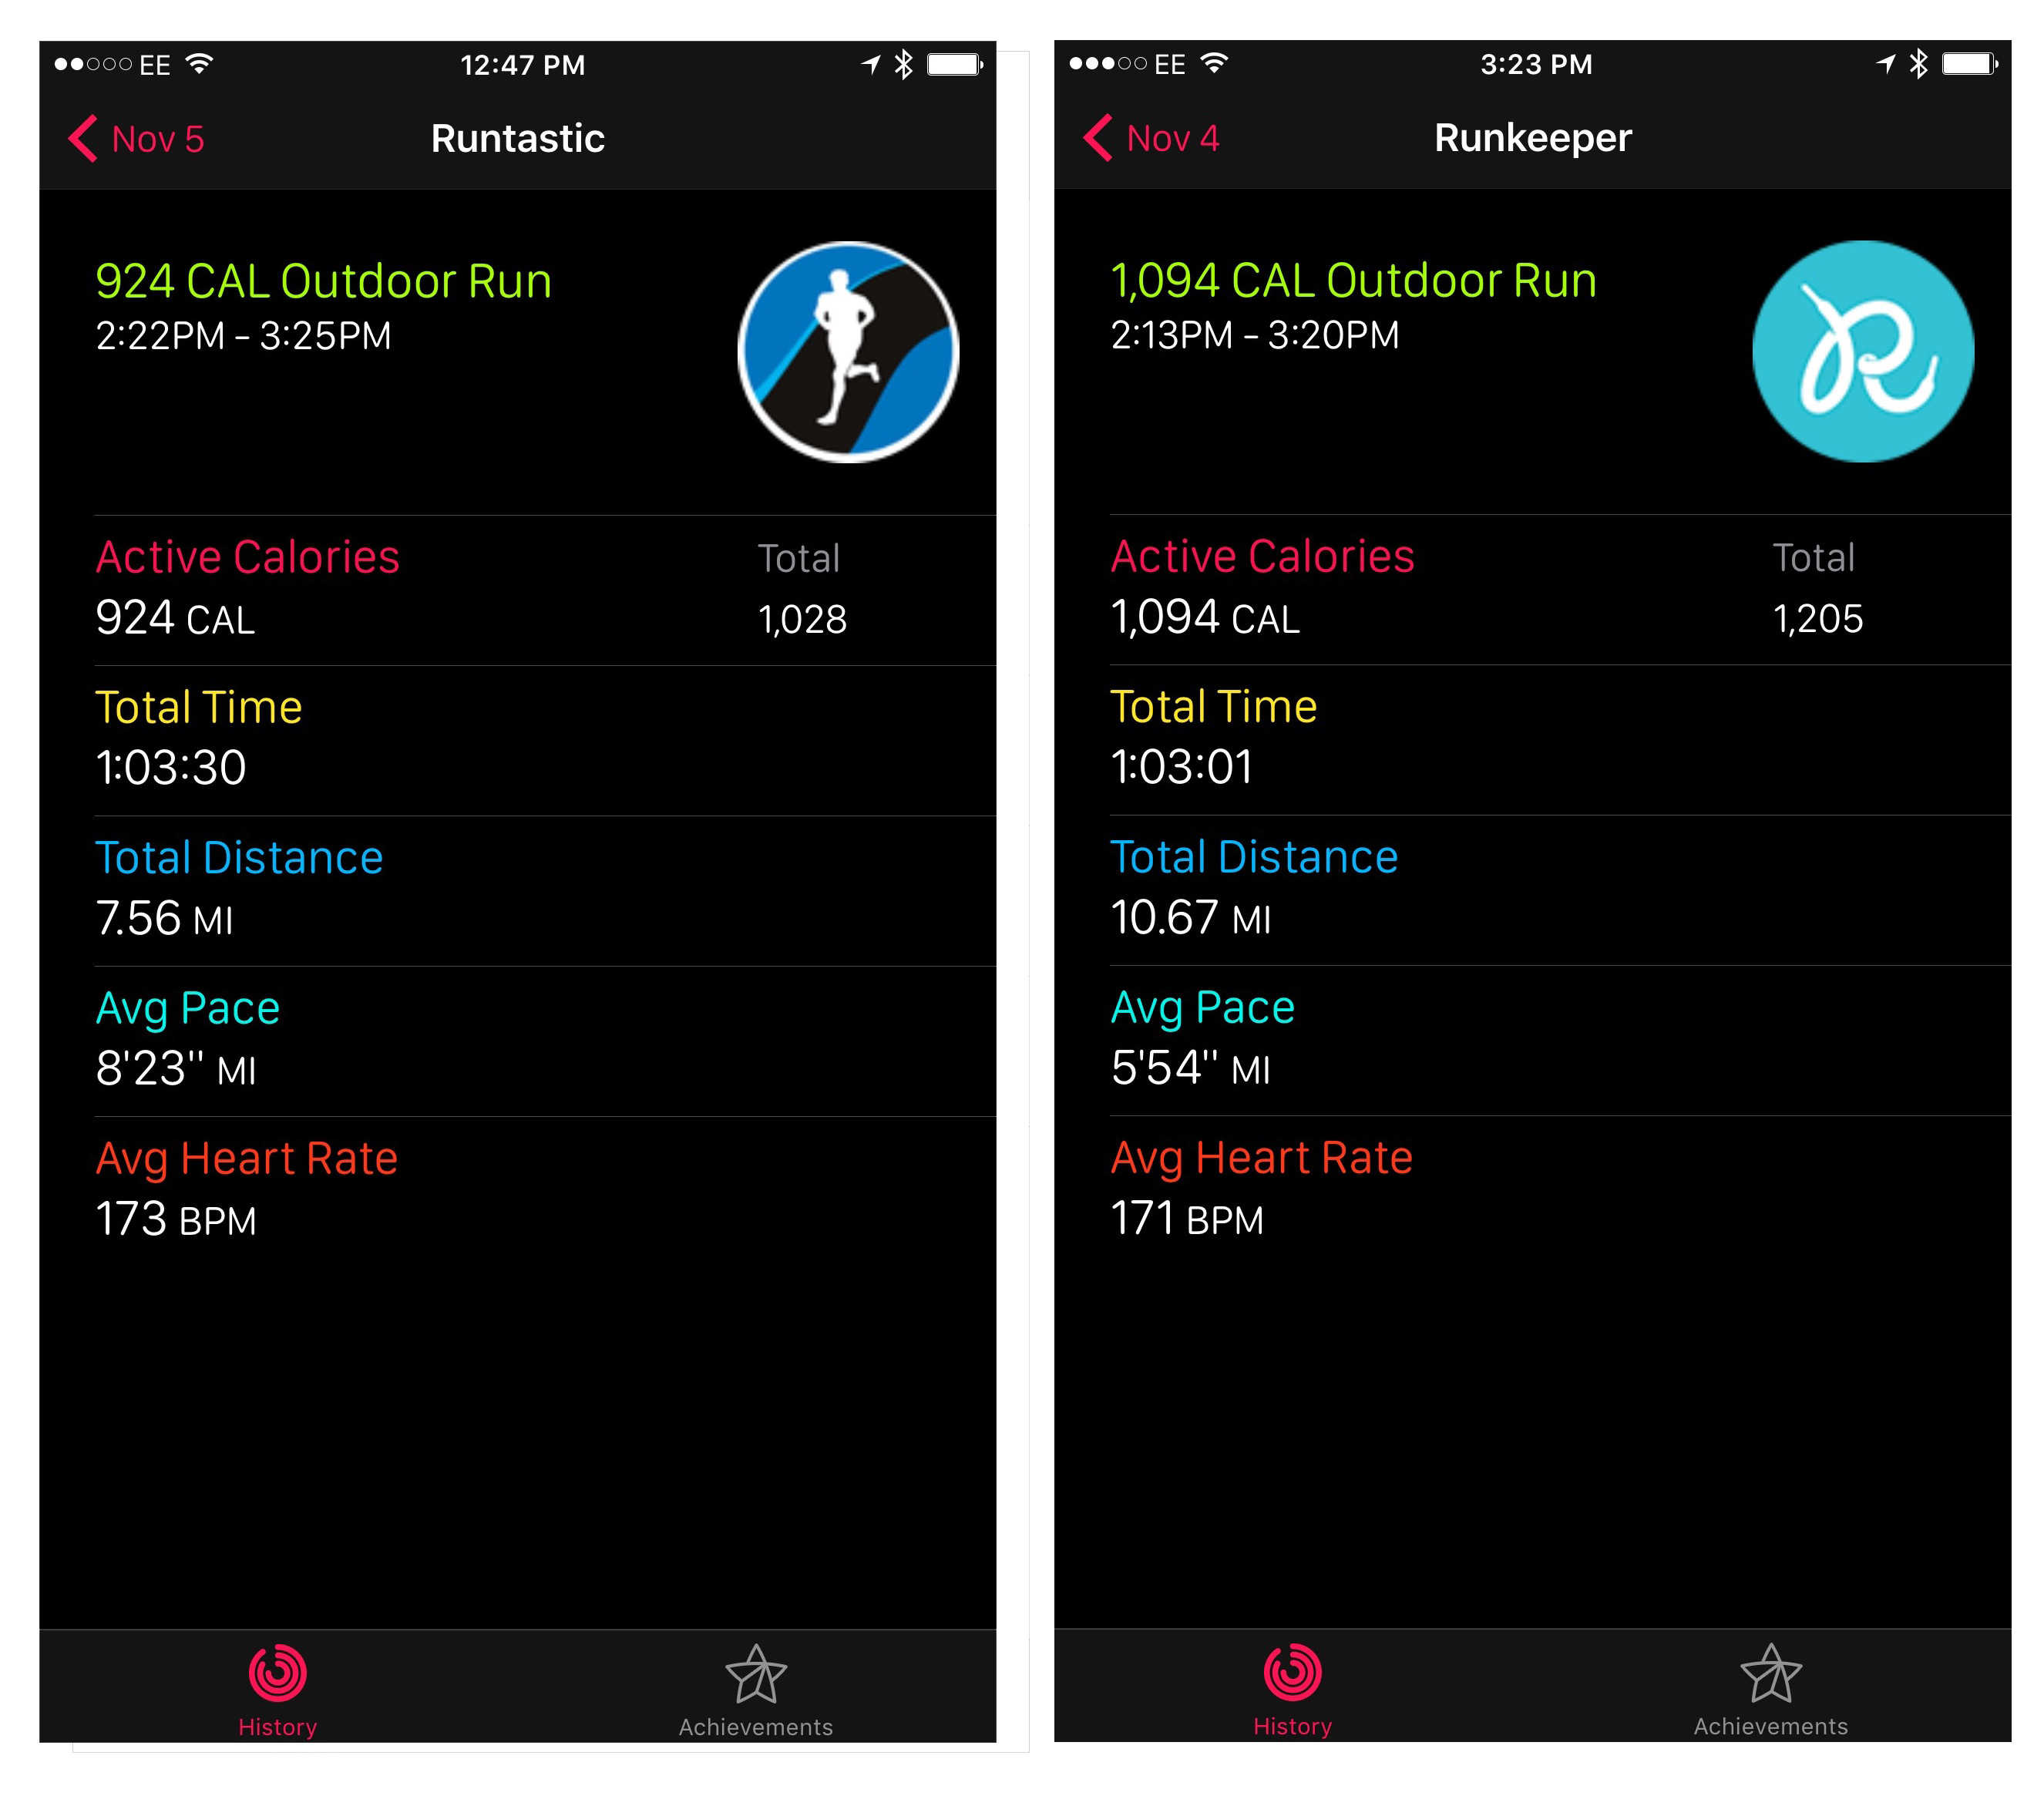 Third-party watchOS 2 running apps can display workouts within the Activity app